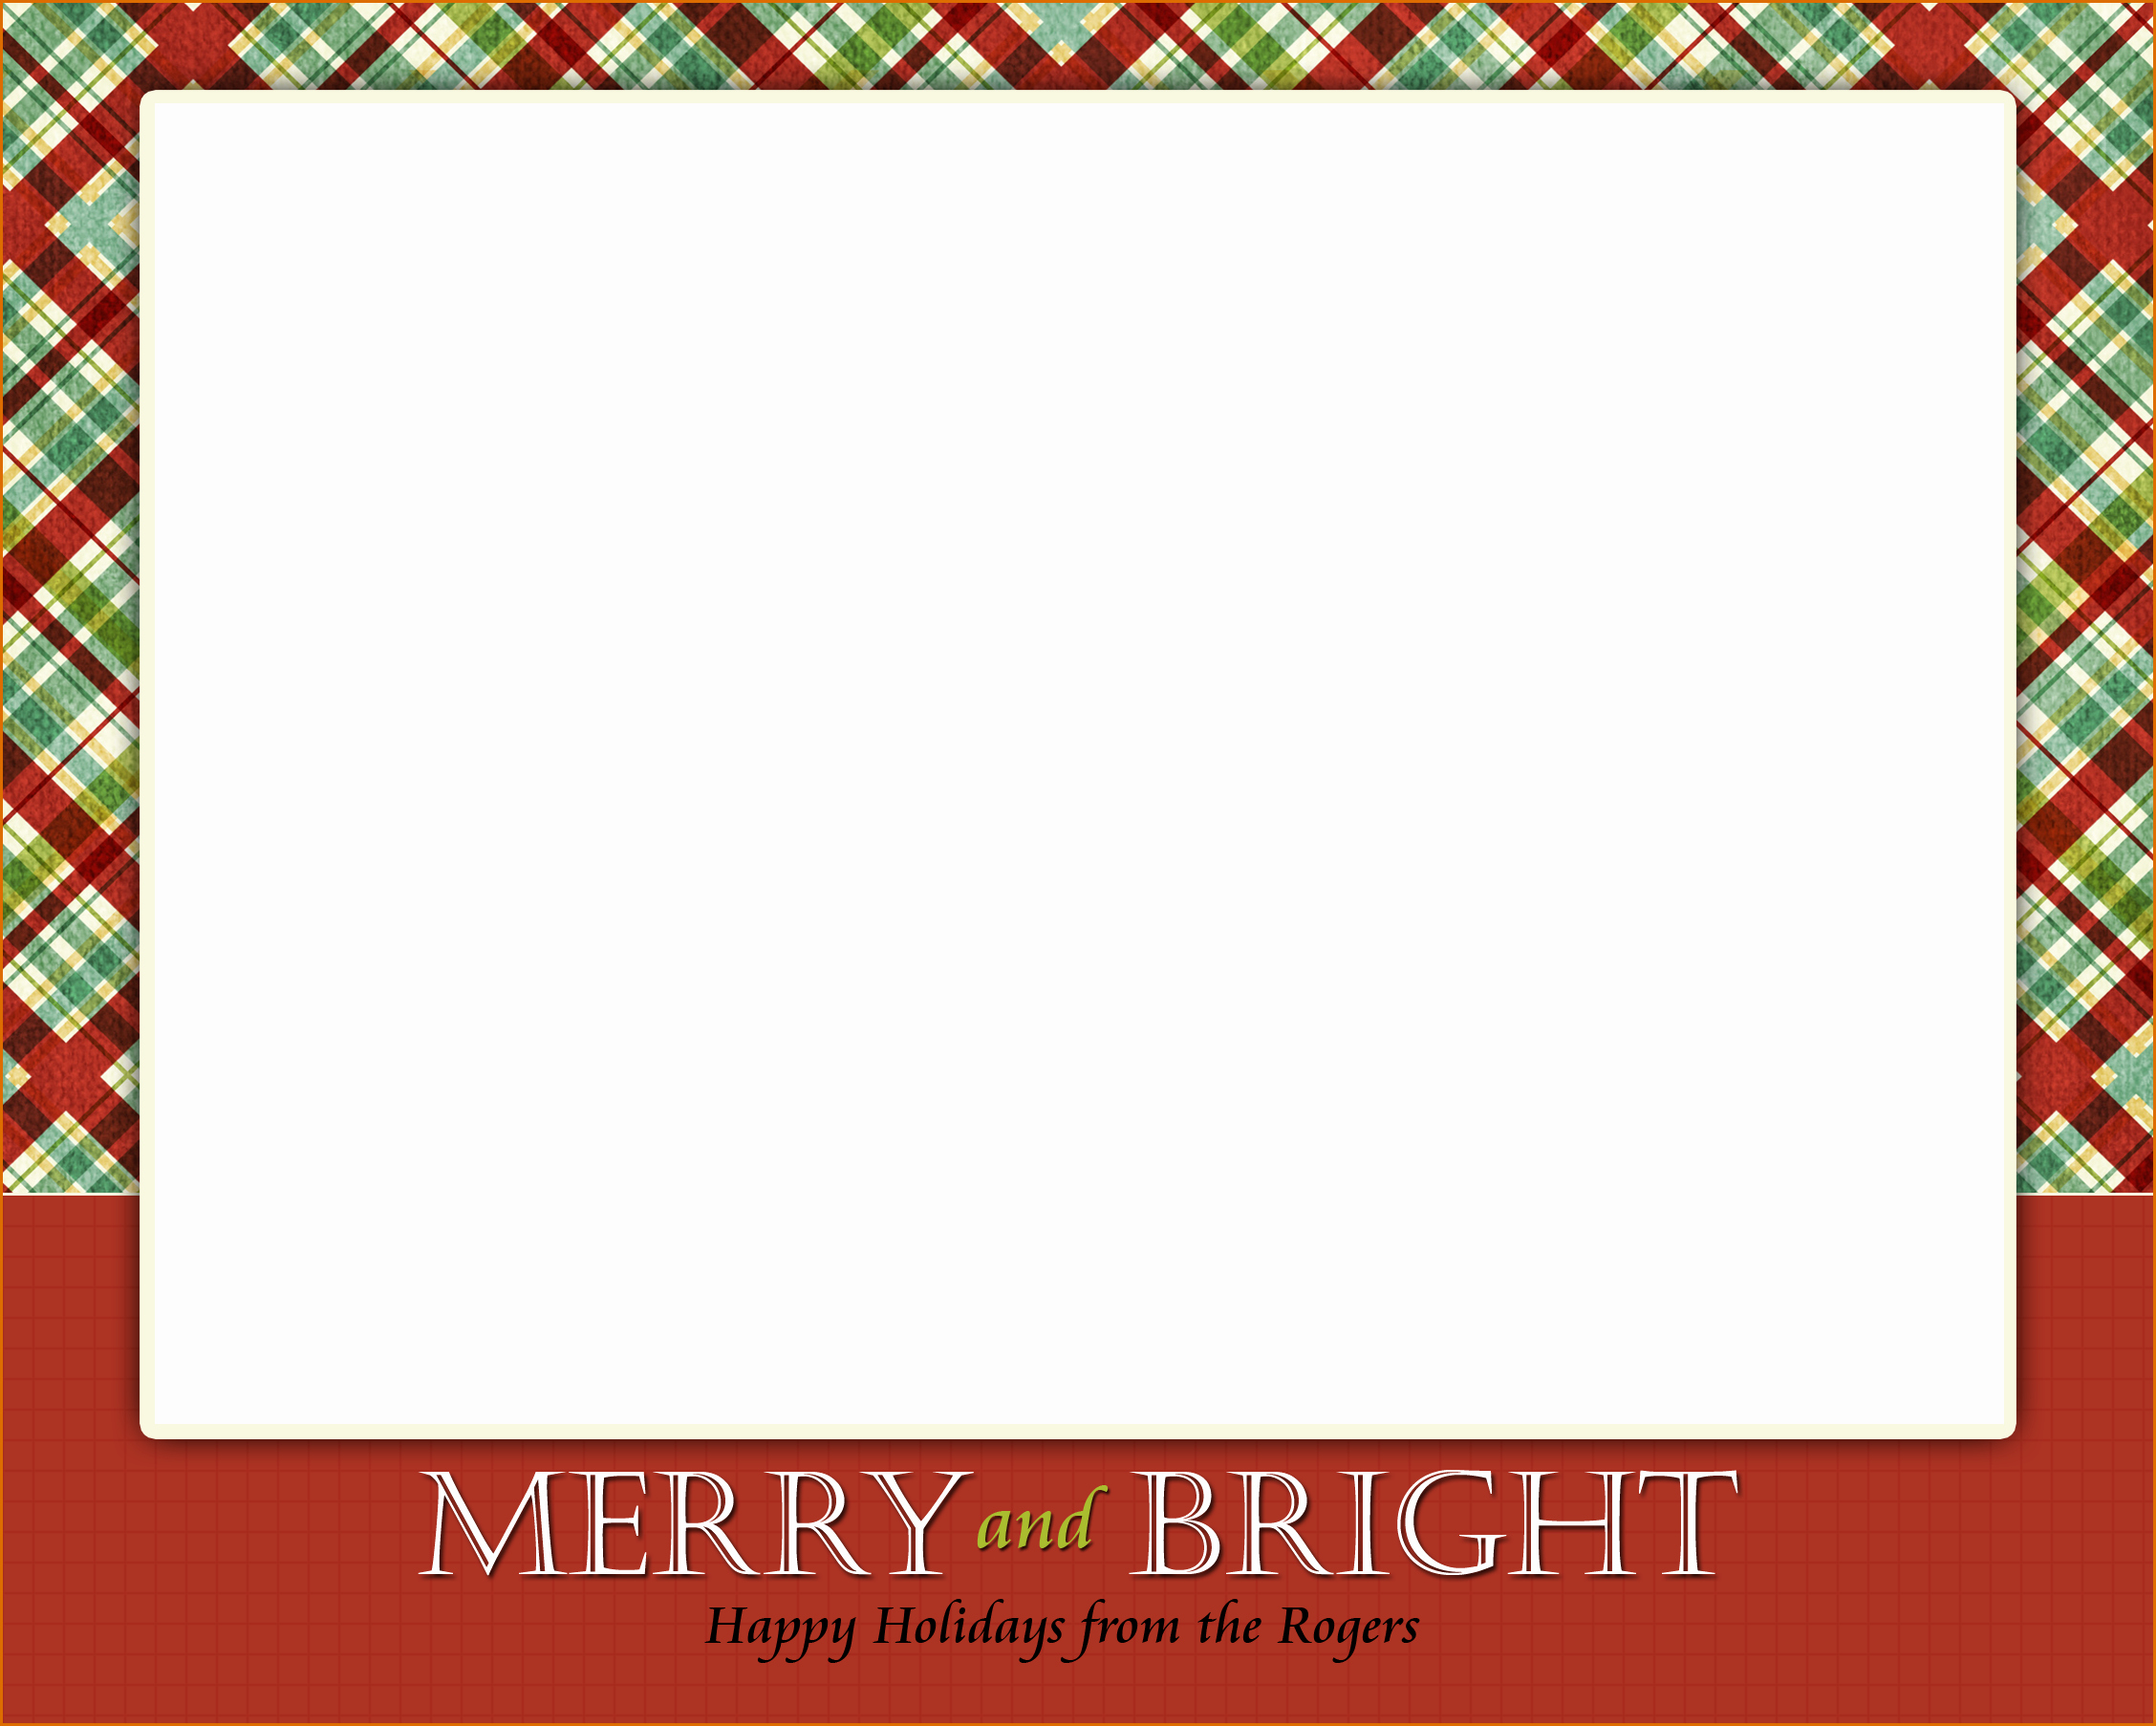 Microsoft Word Christmas Card Template Awesome 12 Free Christmas Templates for Word